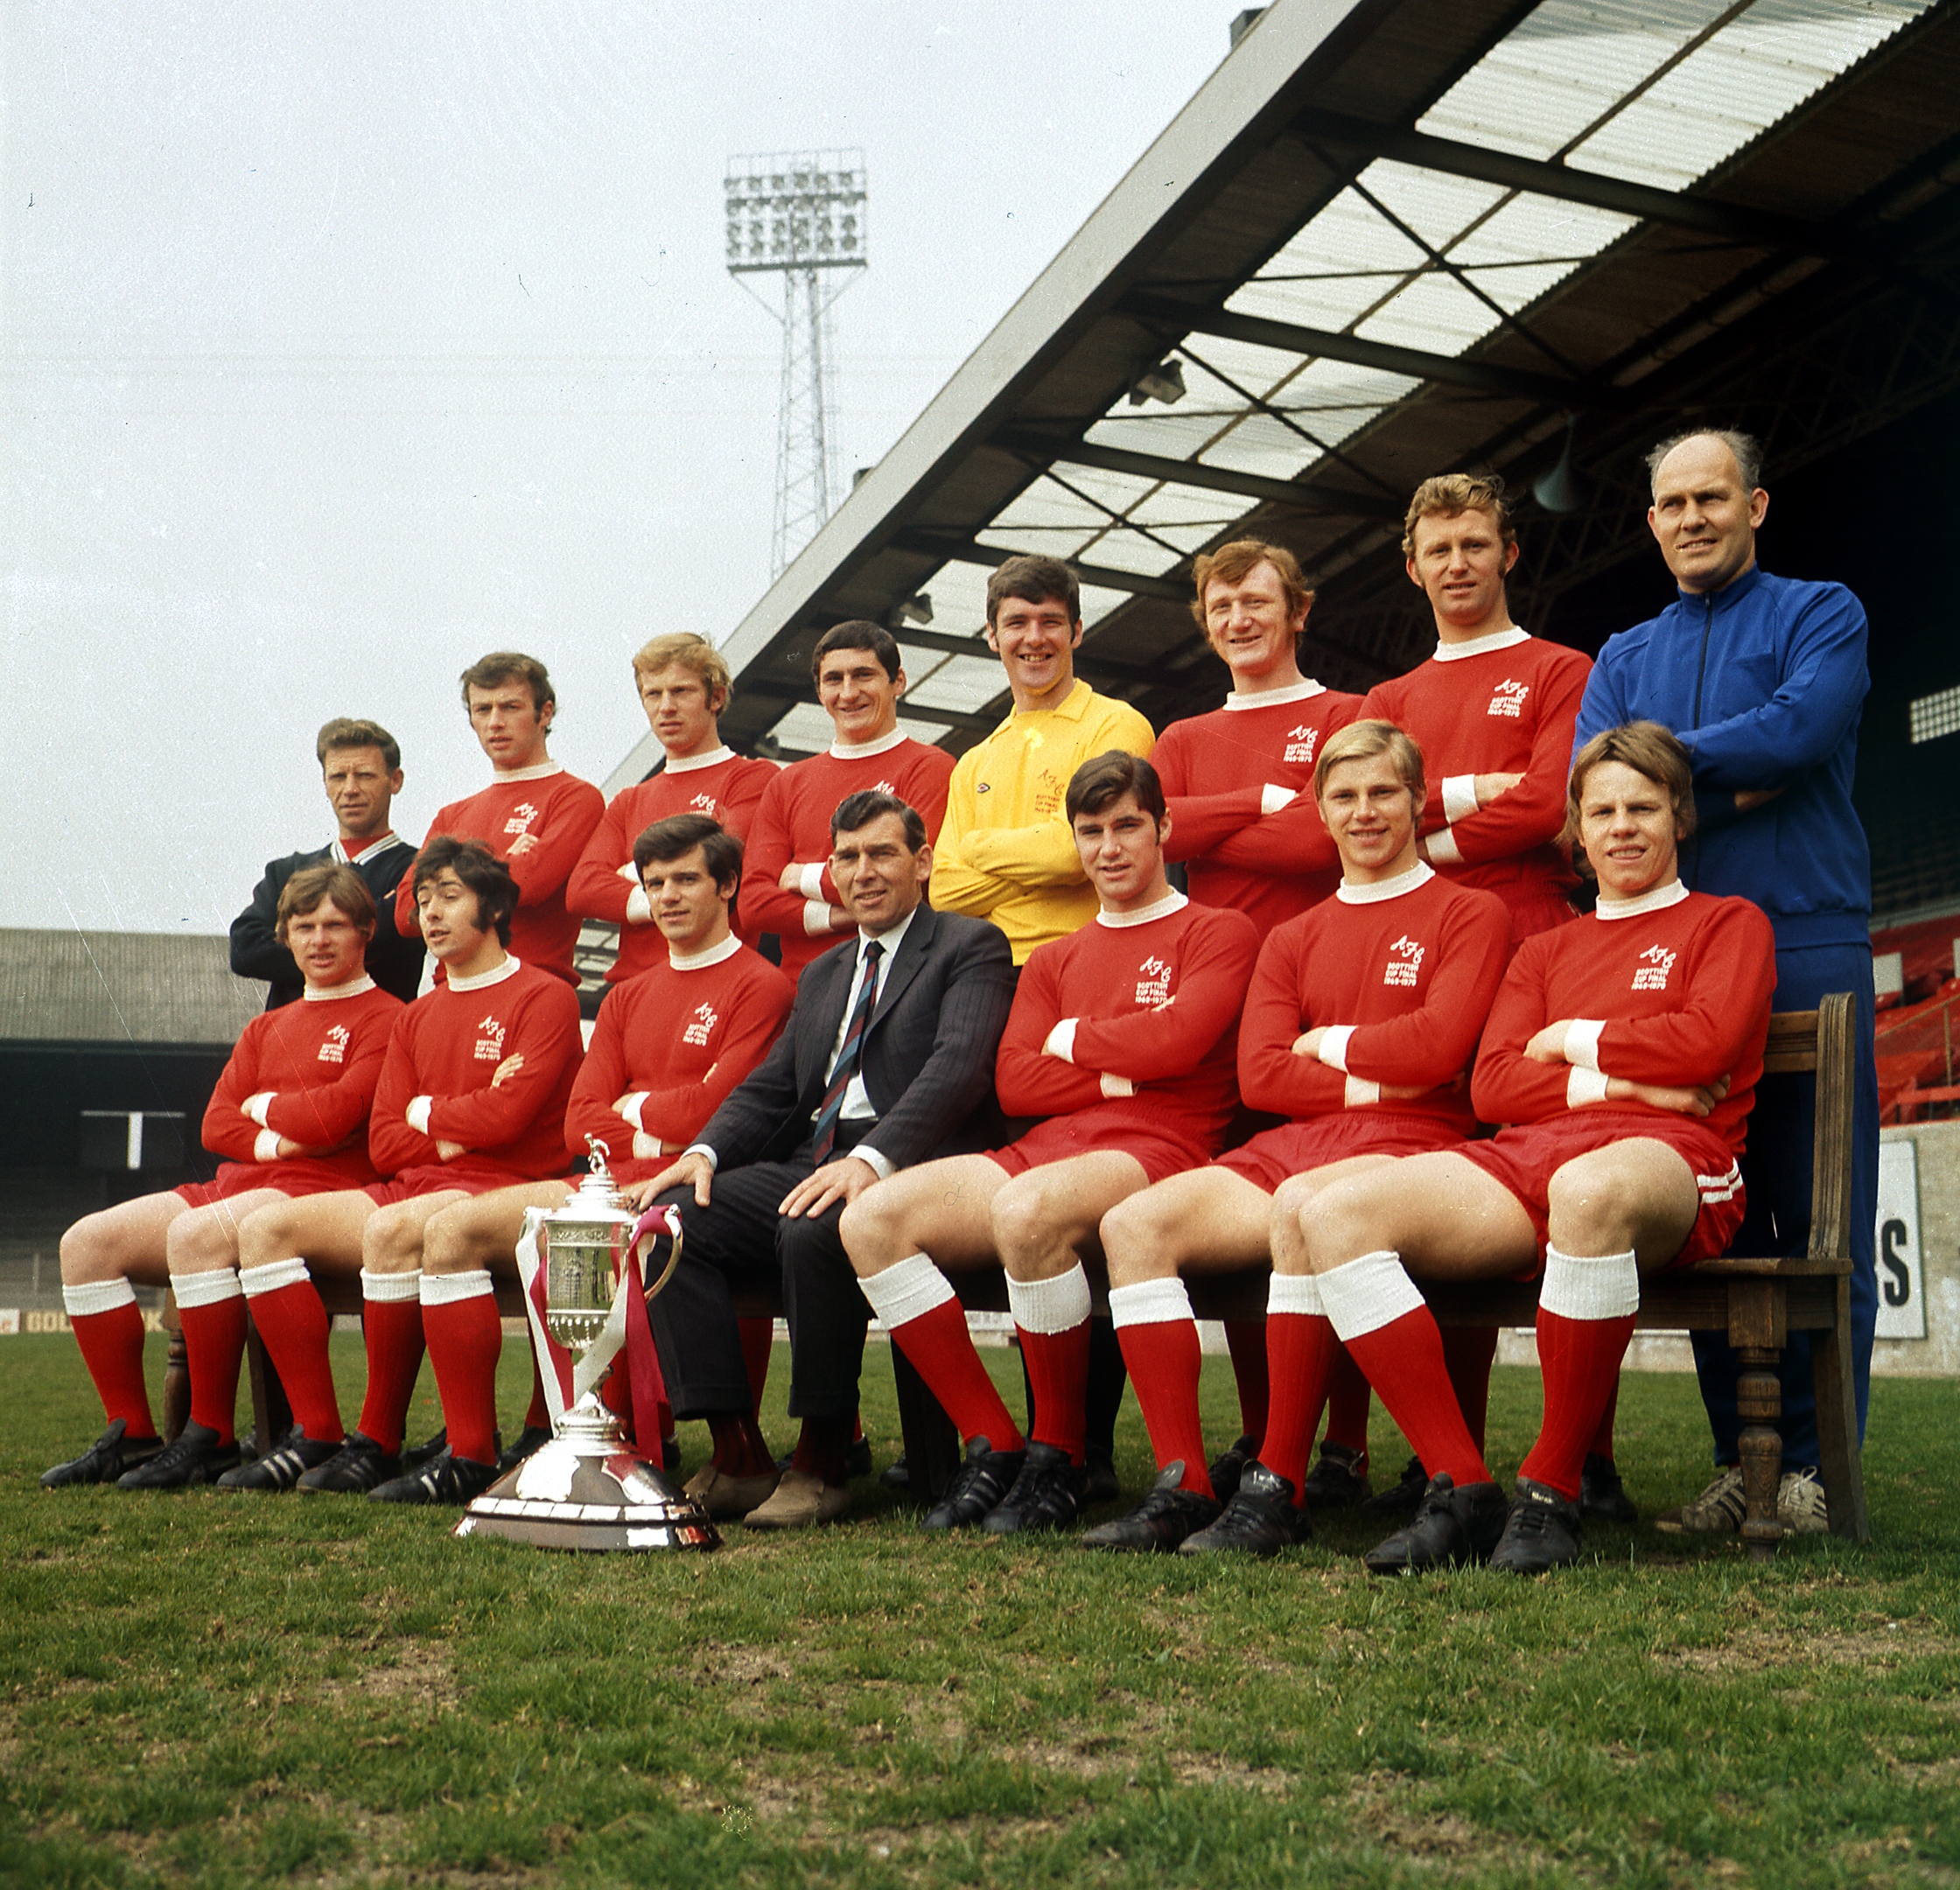 Aberdeen with the Scottish Cup in 1970. Back, from left, Teddy Scott (trainer), Tommy McMillan, Henning Boel, Jim Hermiston, Bobby Clark, Davie Robb, George Murray, Jimmy Bonthrone (assistant manager). Front,  Joe Harper, Derek McKay, Jim Forrest, Eddie Turnbull (manager), Martin Buchan (captain), George Buchan and Arthur Graham.